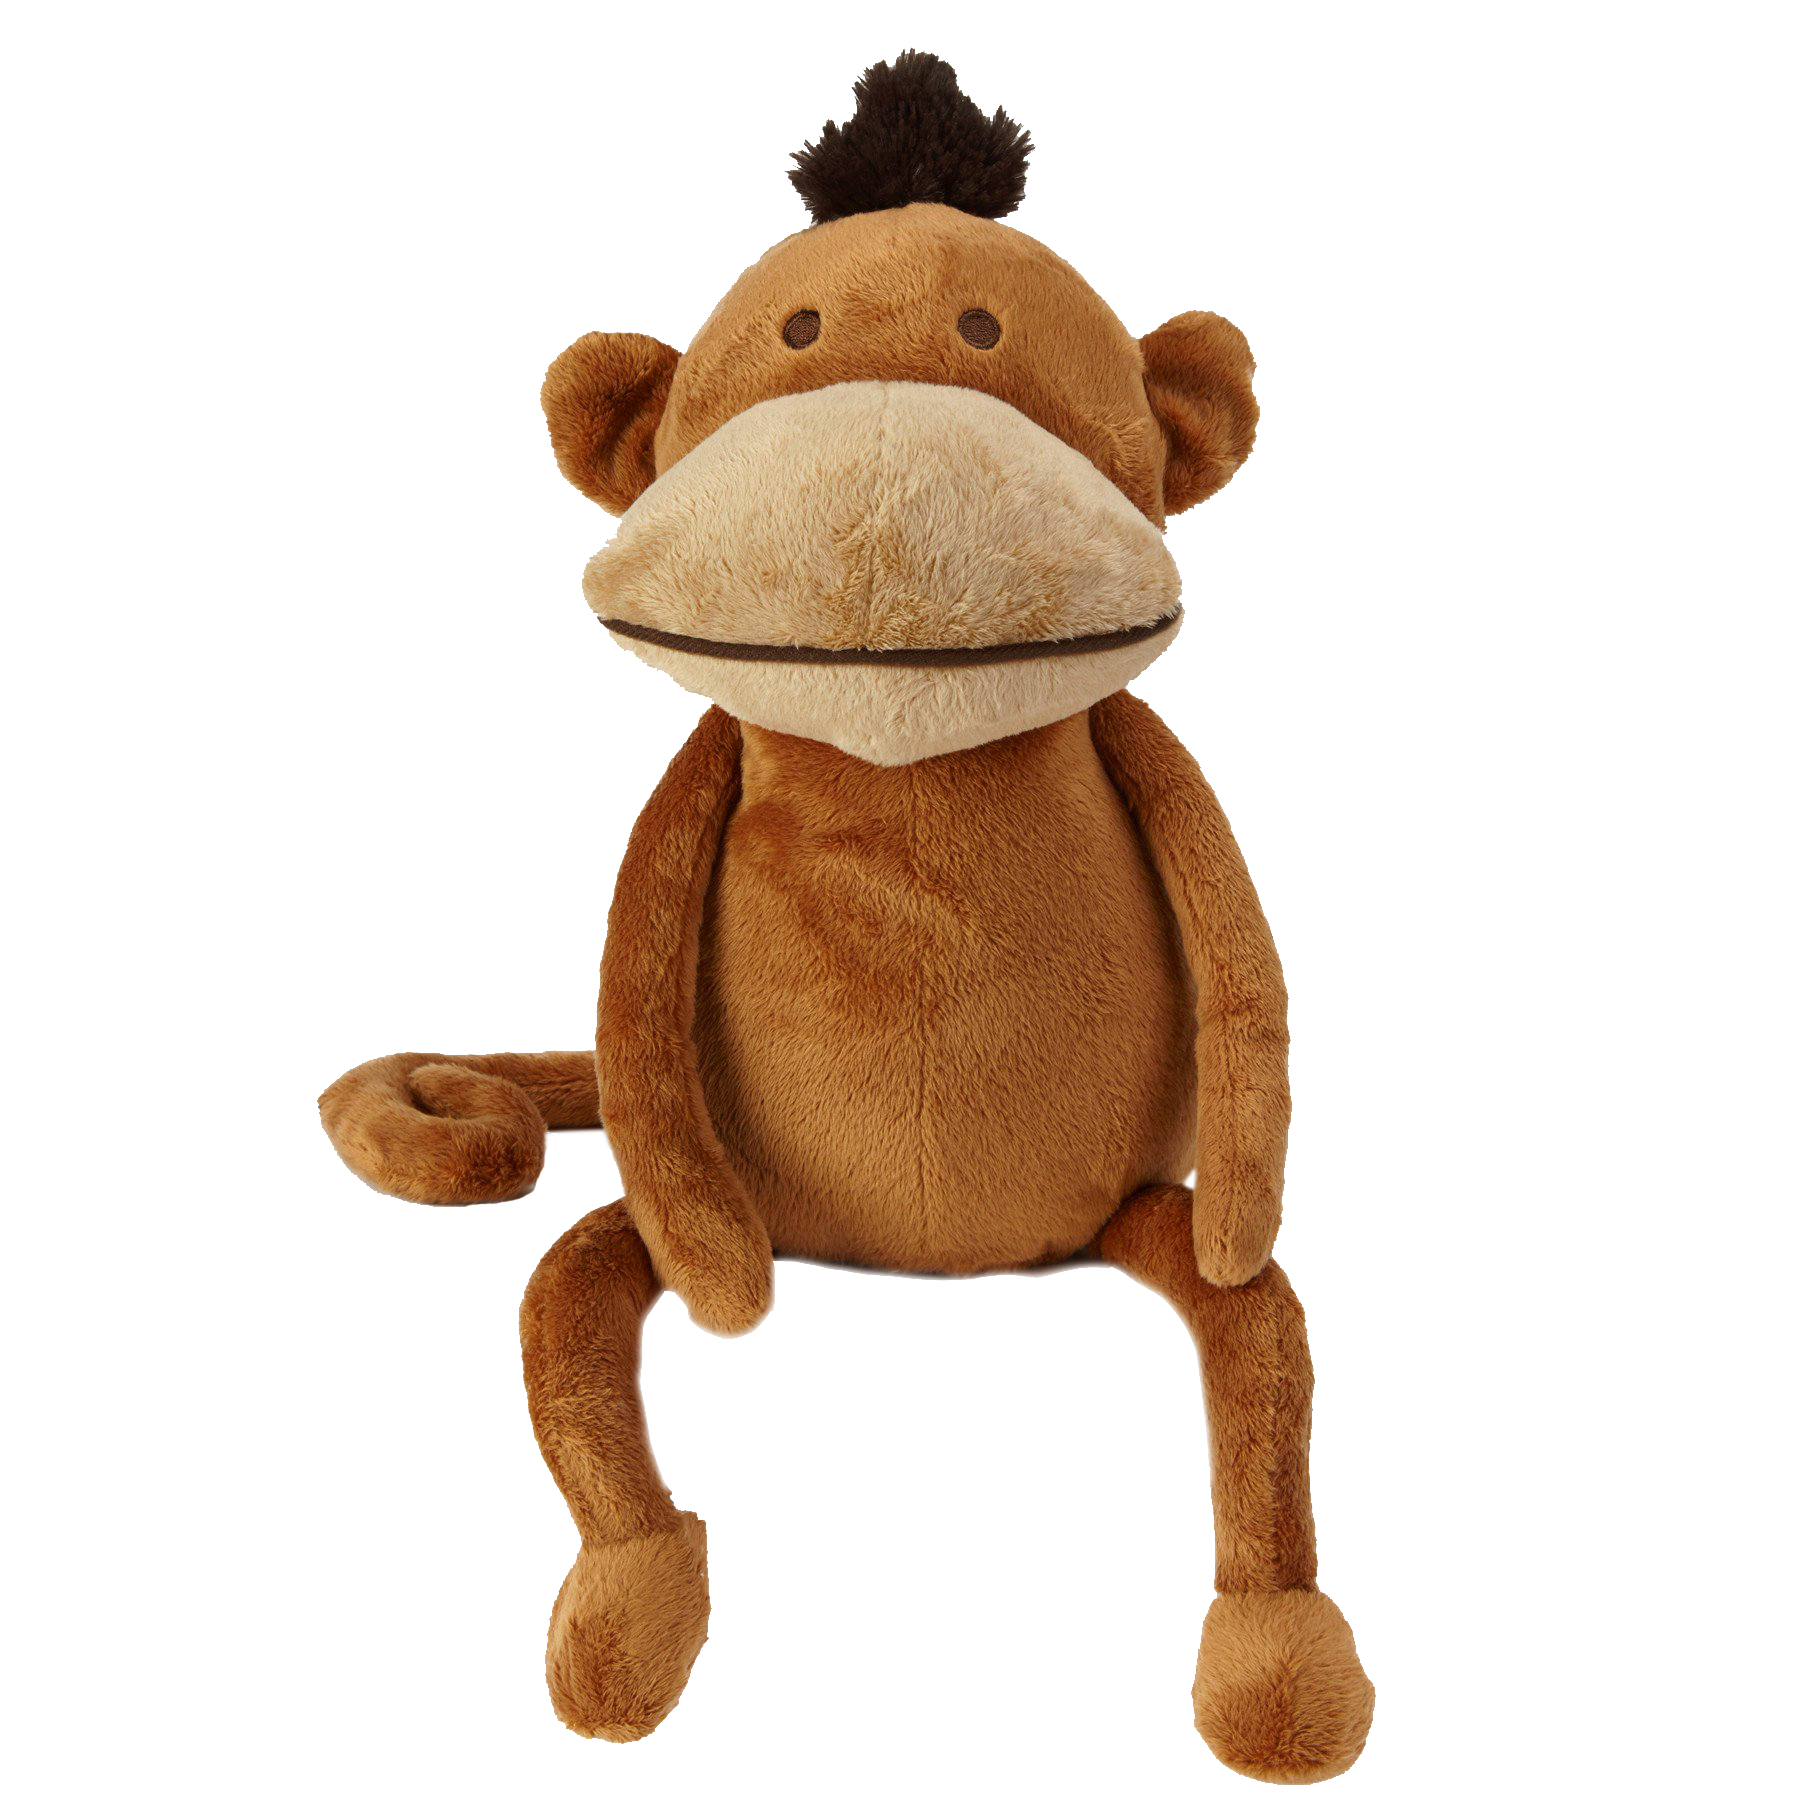 Instant Gratification Monkey Plush Toy Wait But Why Store